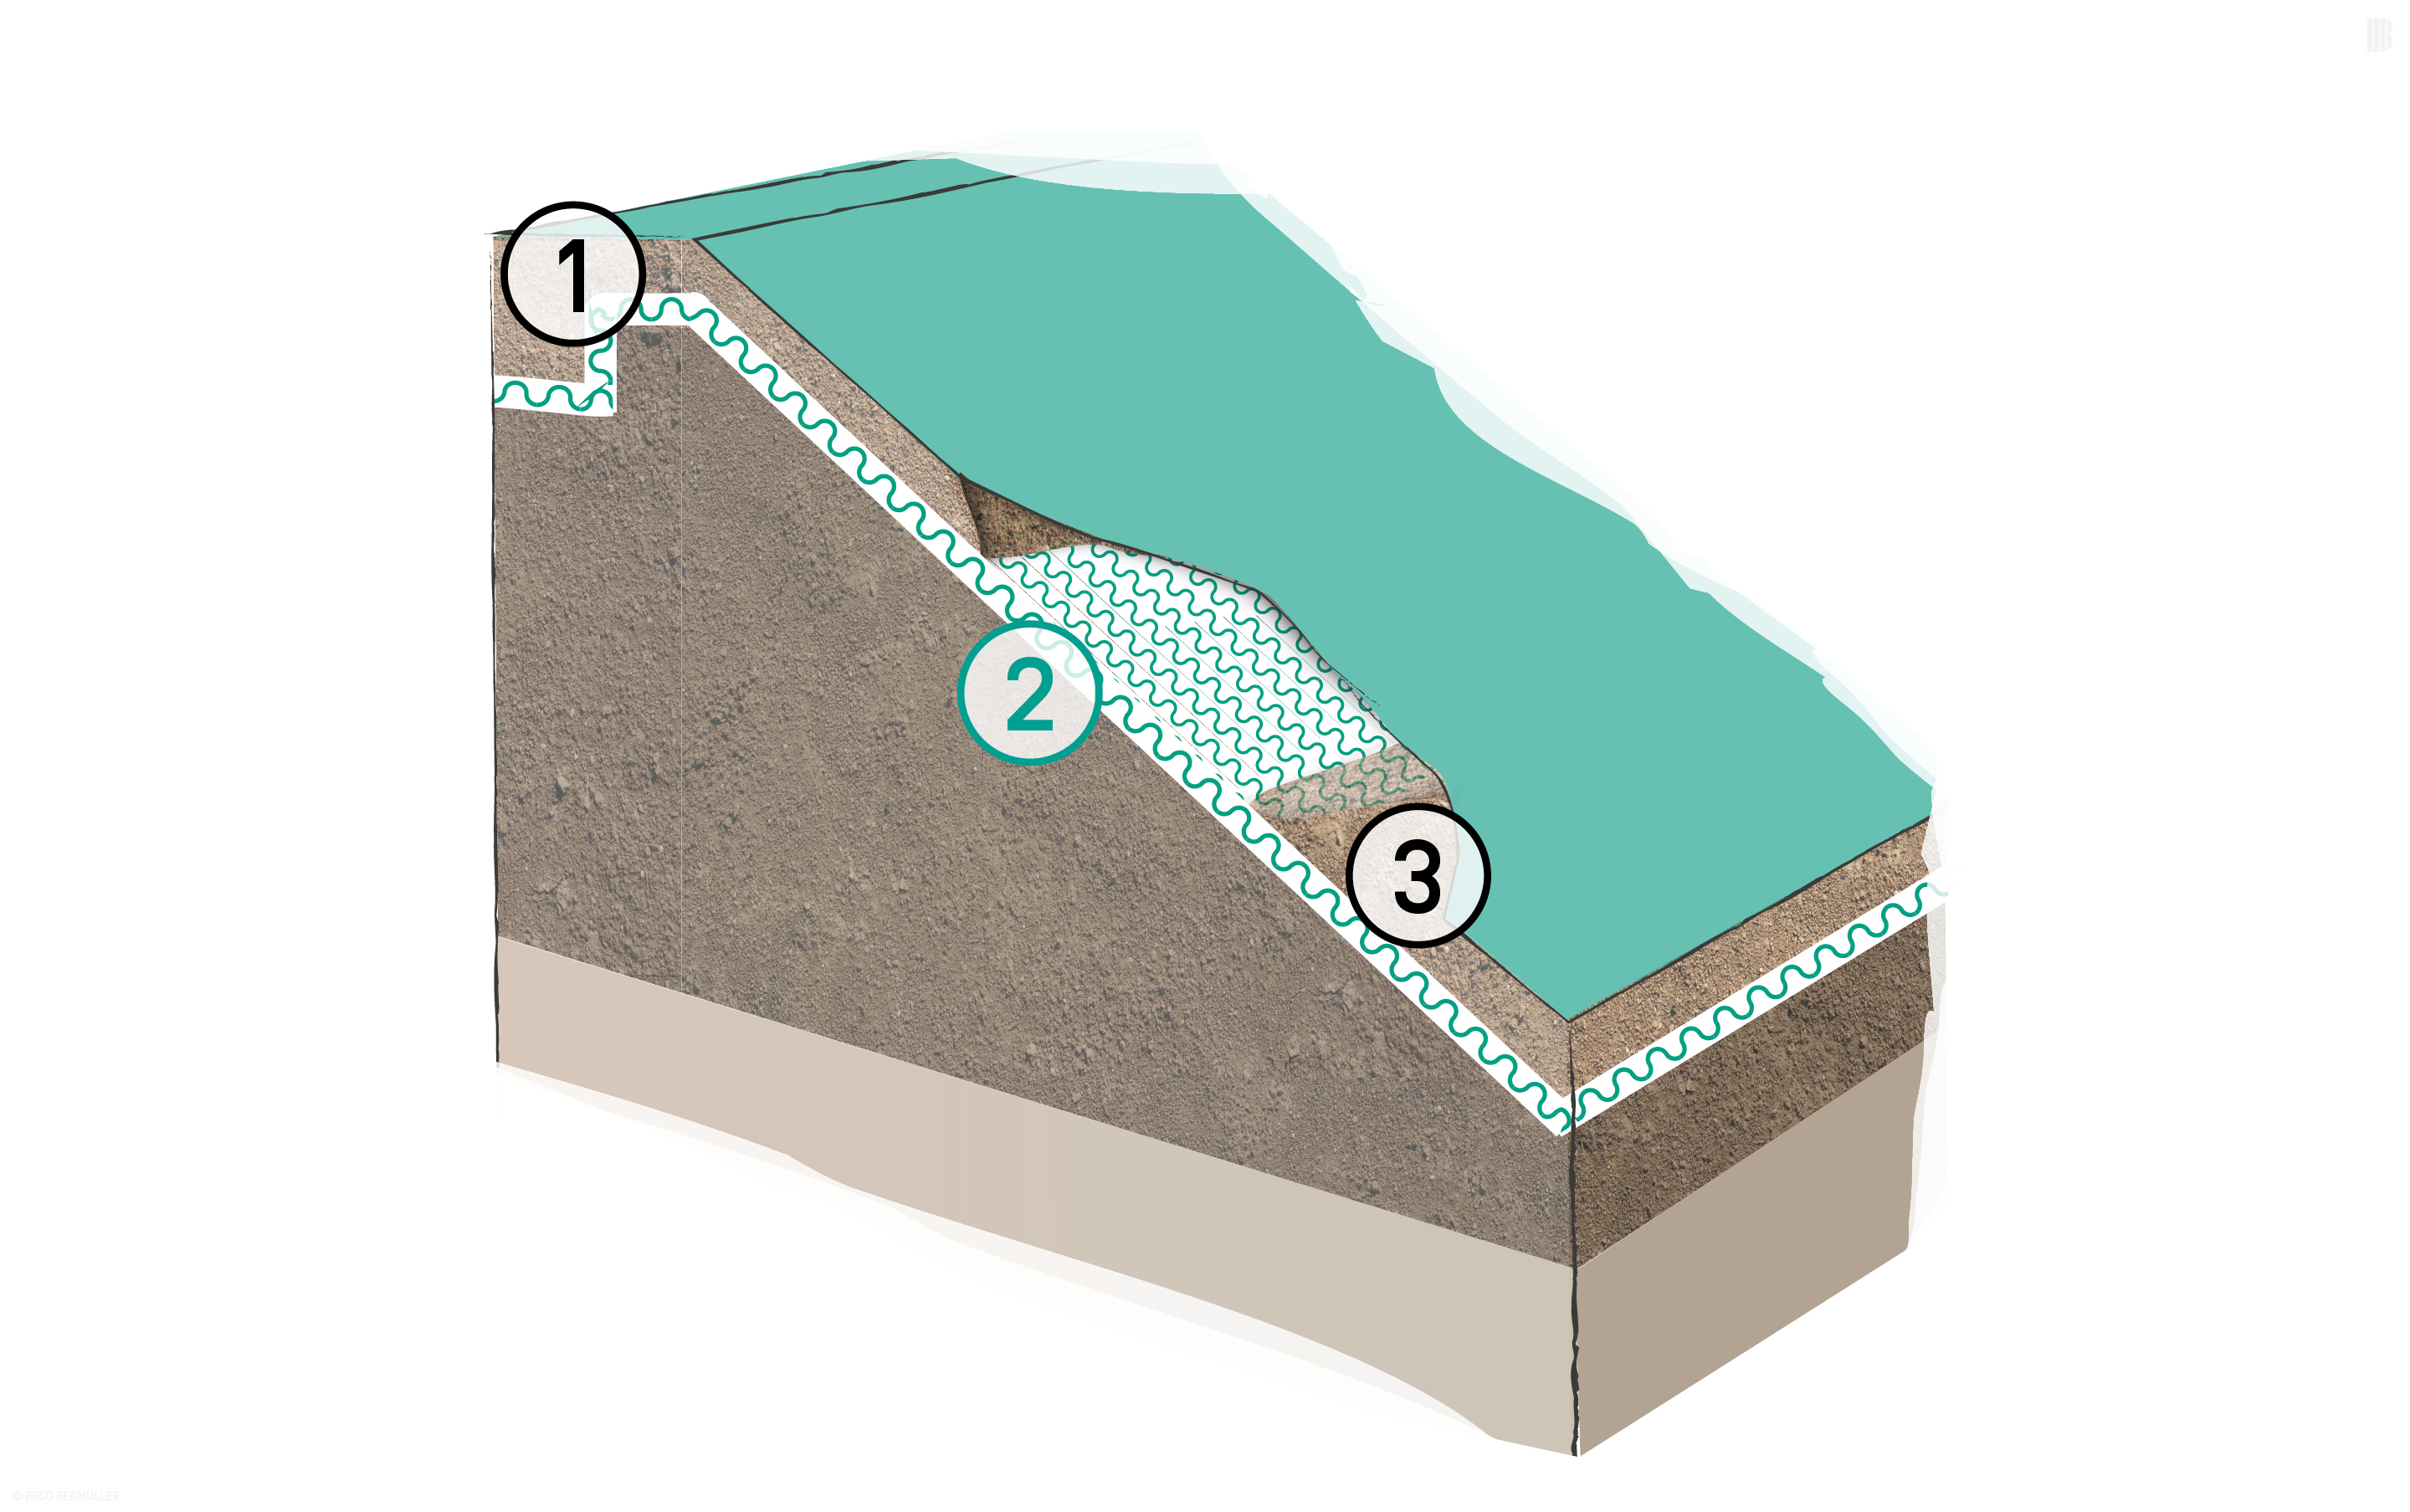 Erosion control mat laid on a slip plane parallel to the slope: 1. Embedding trench | 2. BEMAT Erosion Control Mat | 3. Fill material